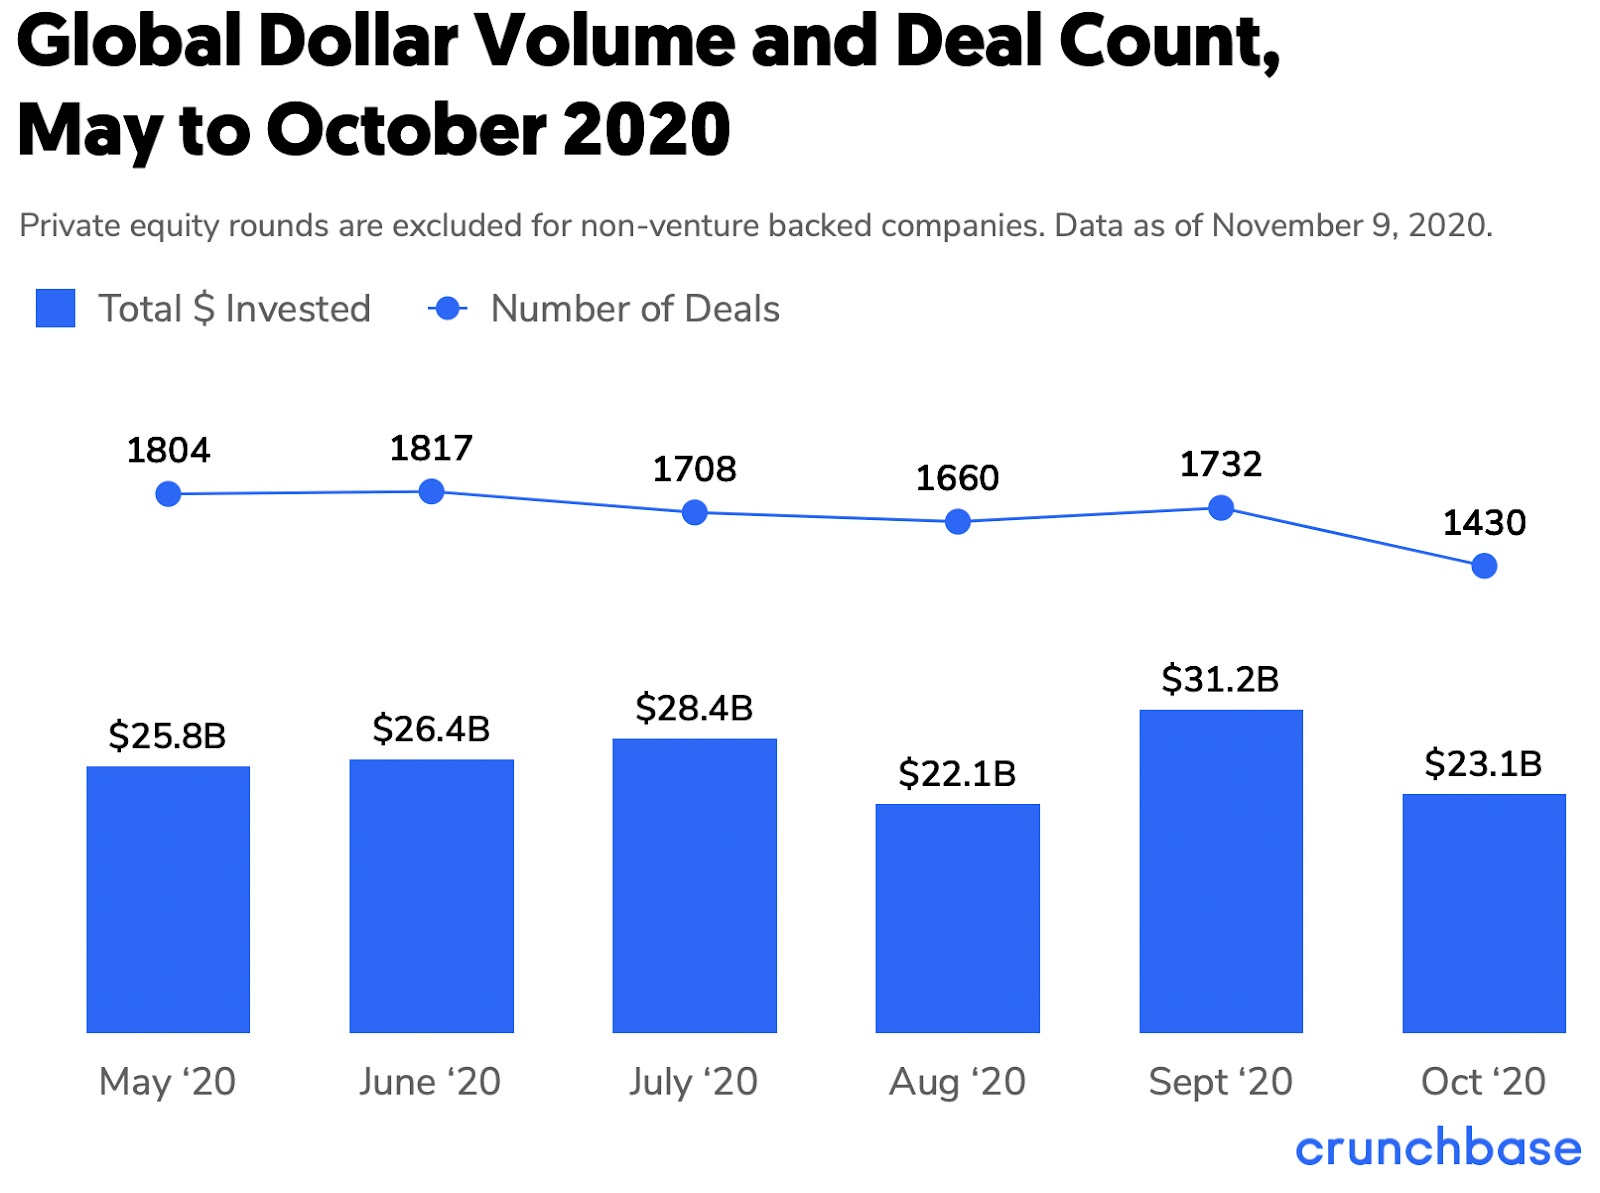 Global startup funding dollar volume and deal count totals from the Crunchbase dataset